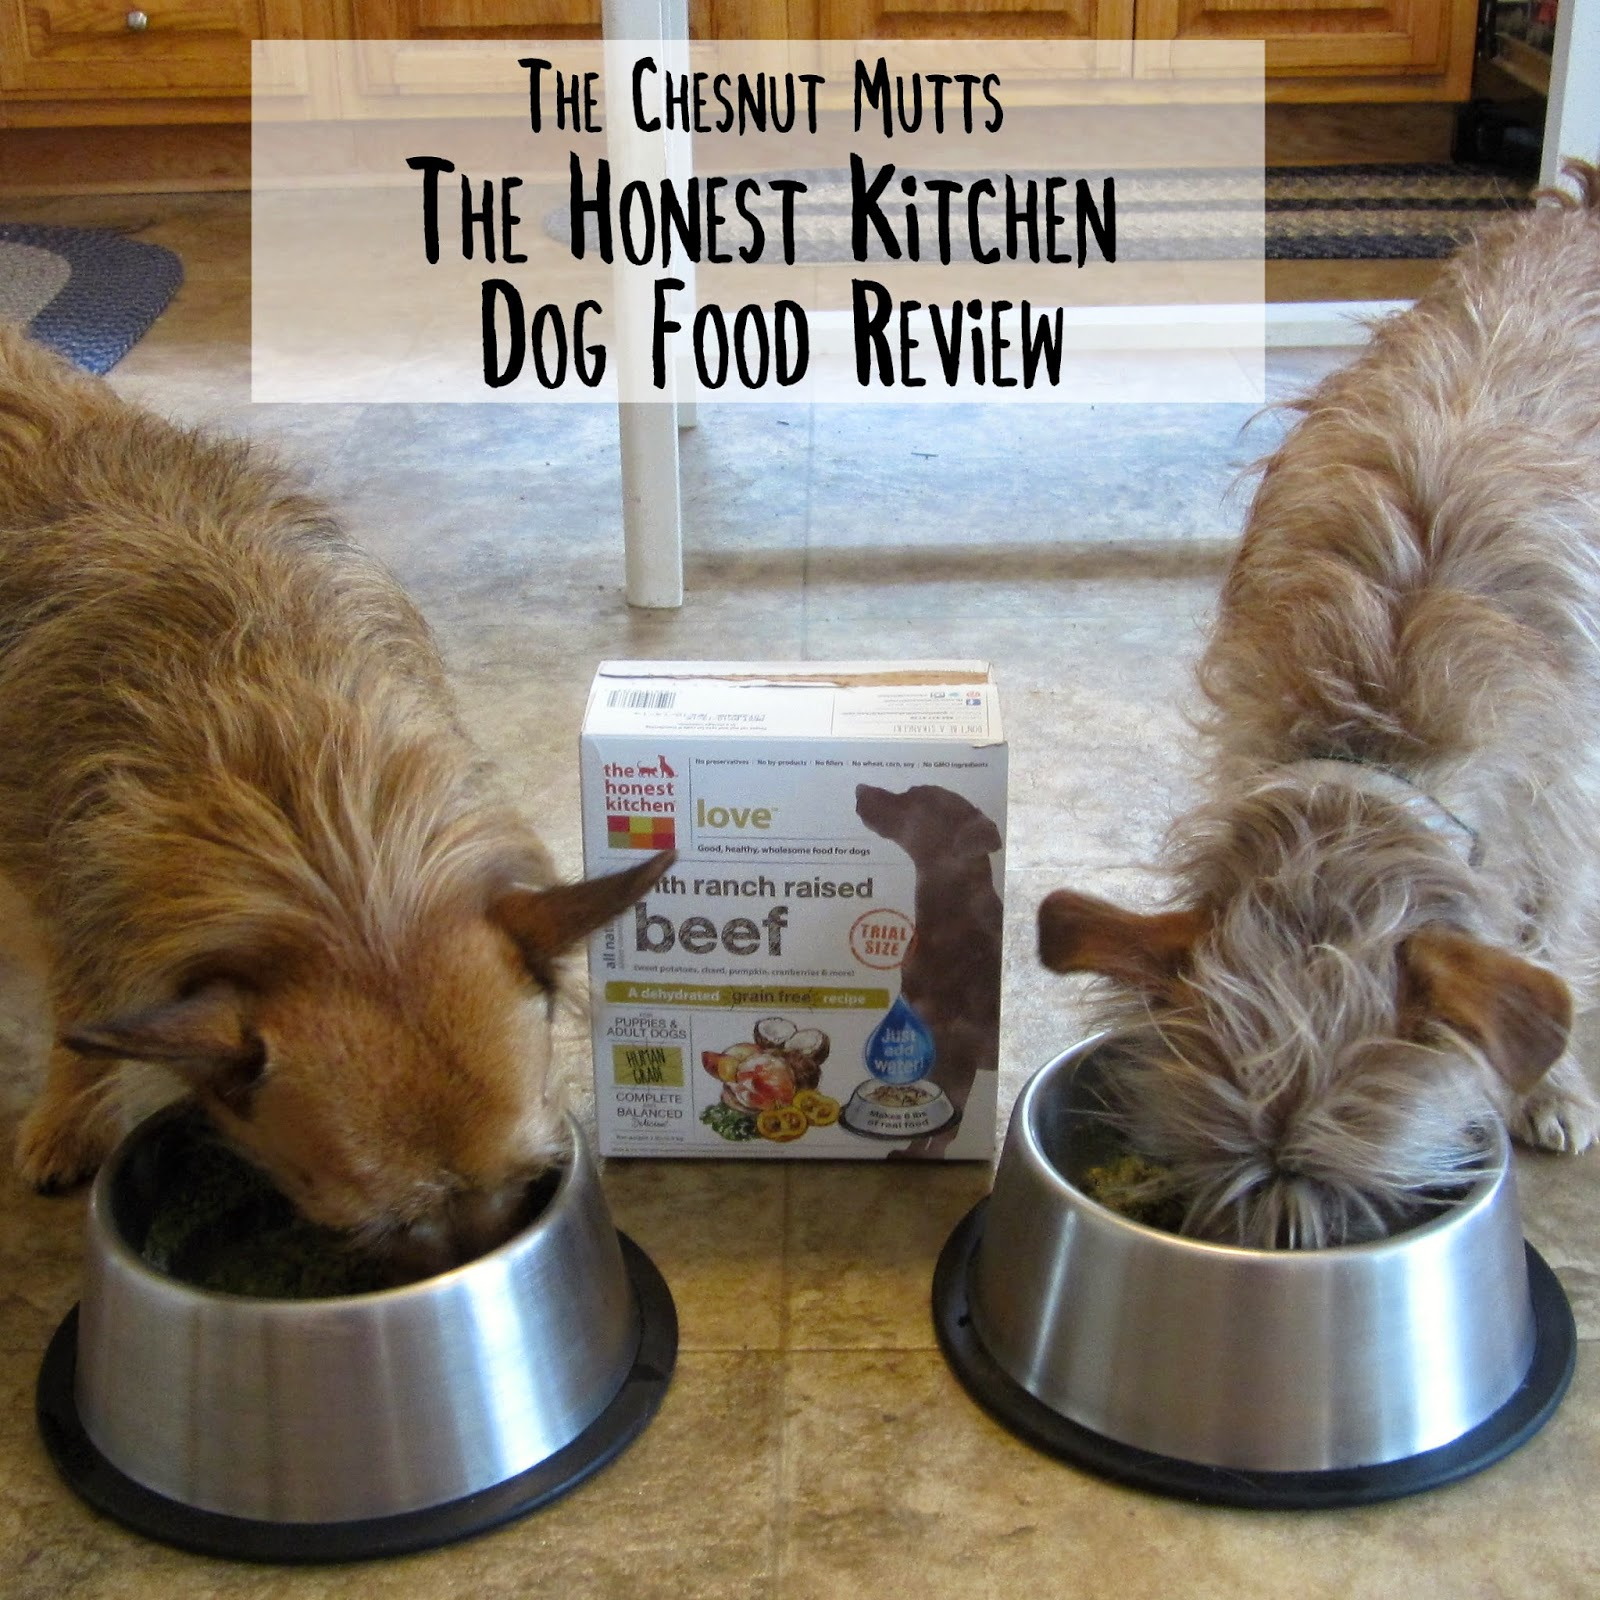 Review The Honest Kitchen Dog Food  The Chesnut Mutts